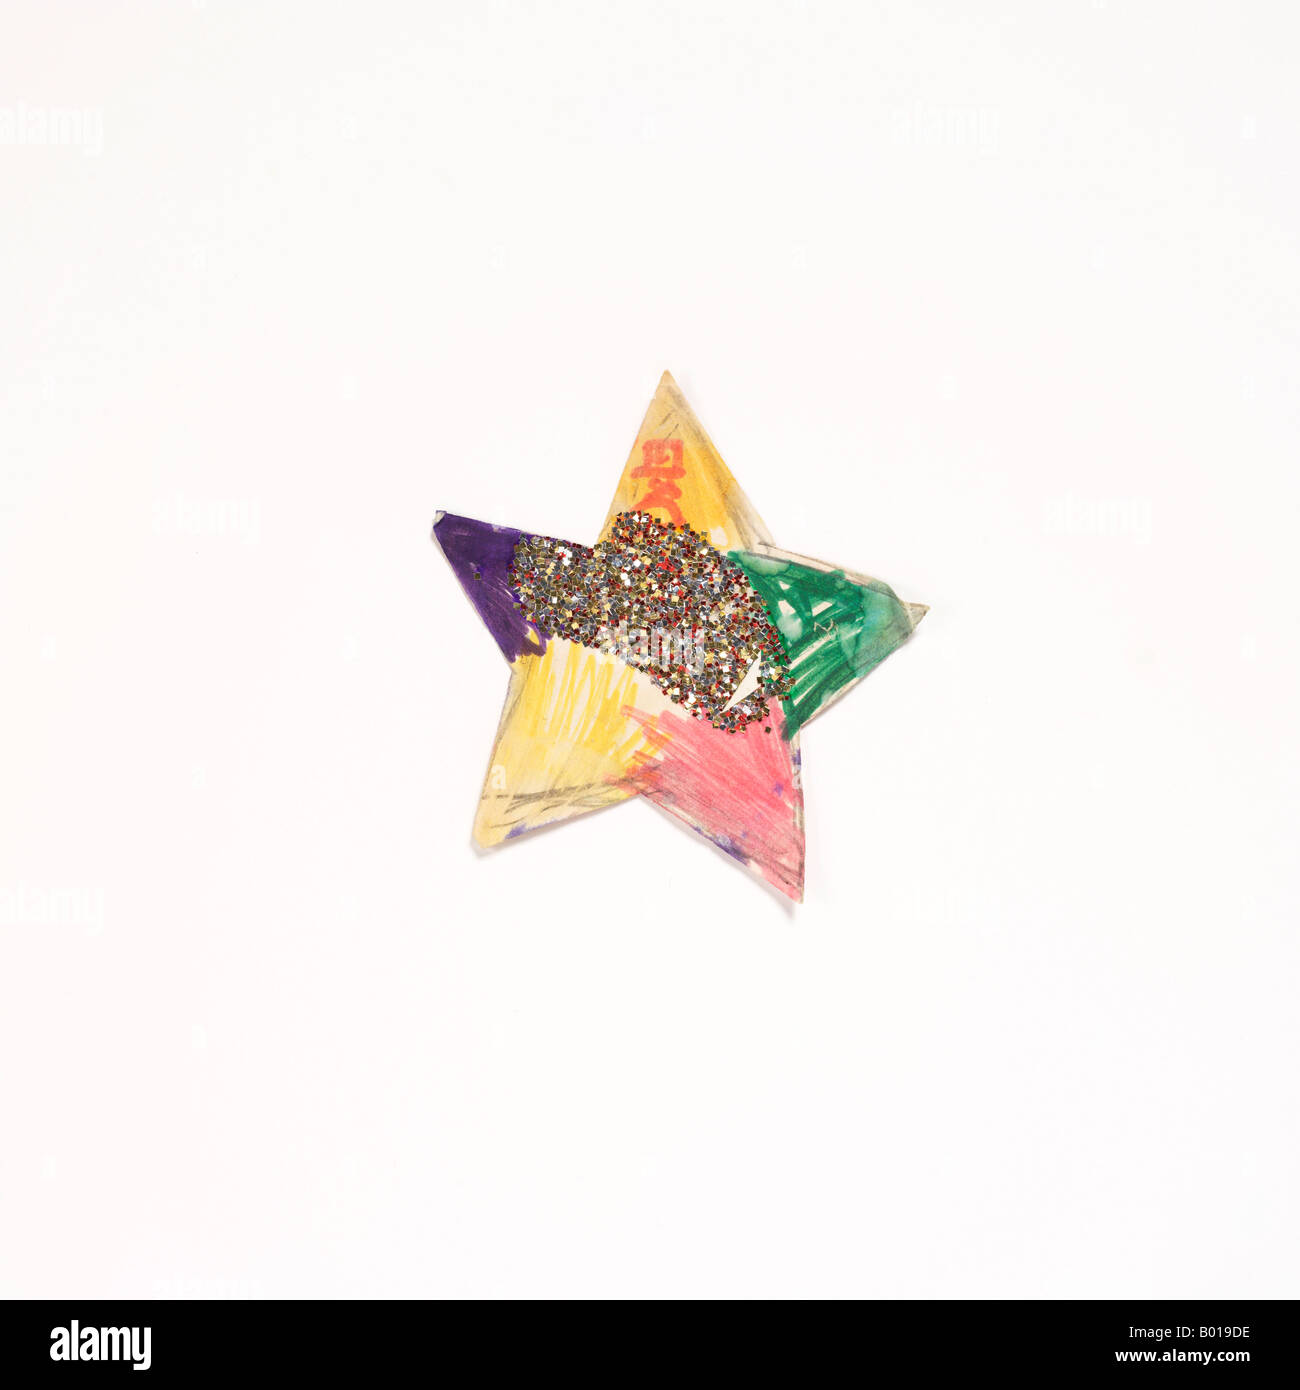 star sprinkled with gold glitter - Stock Image